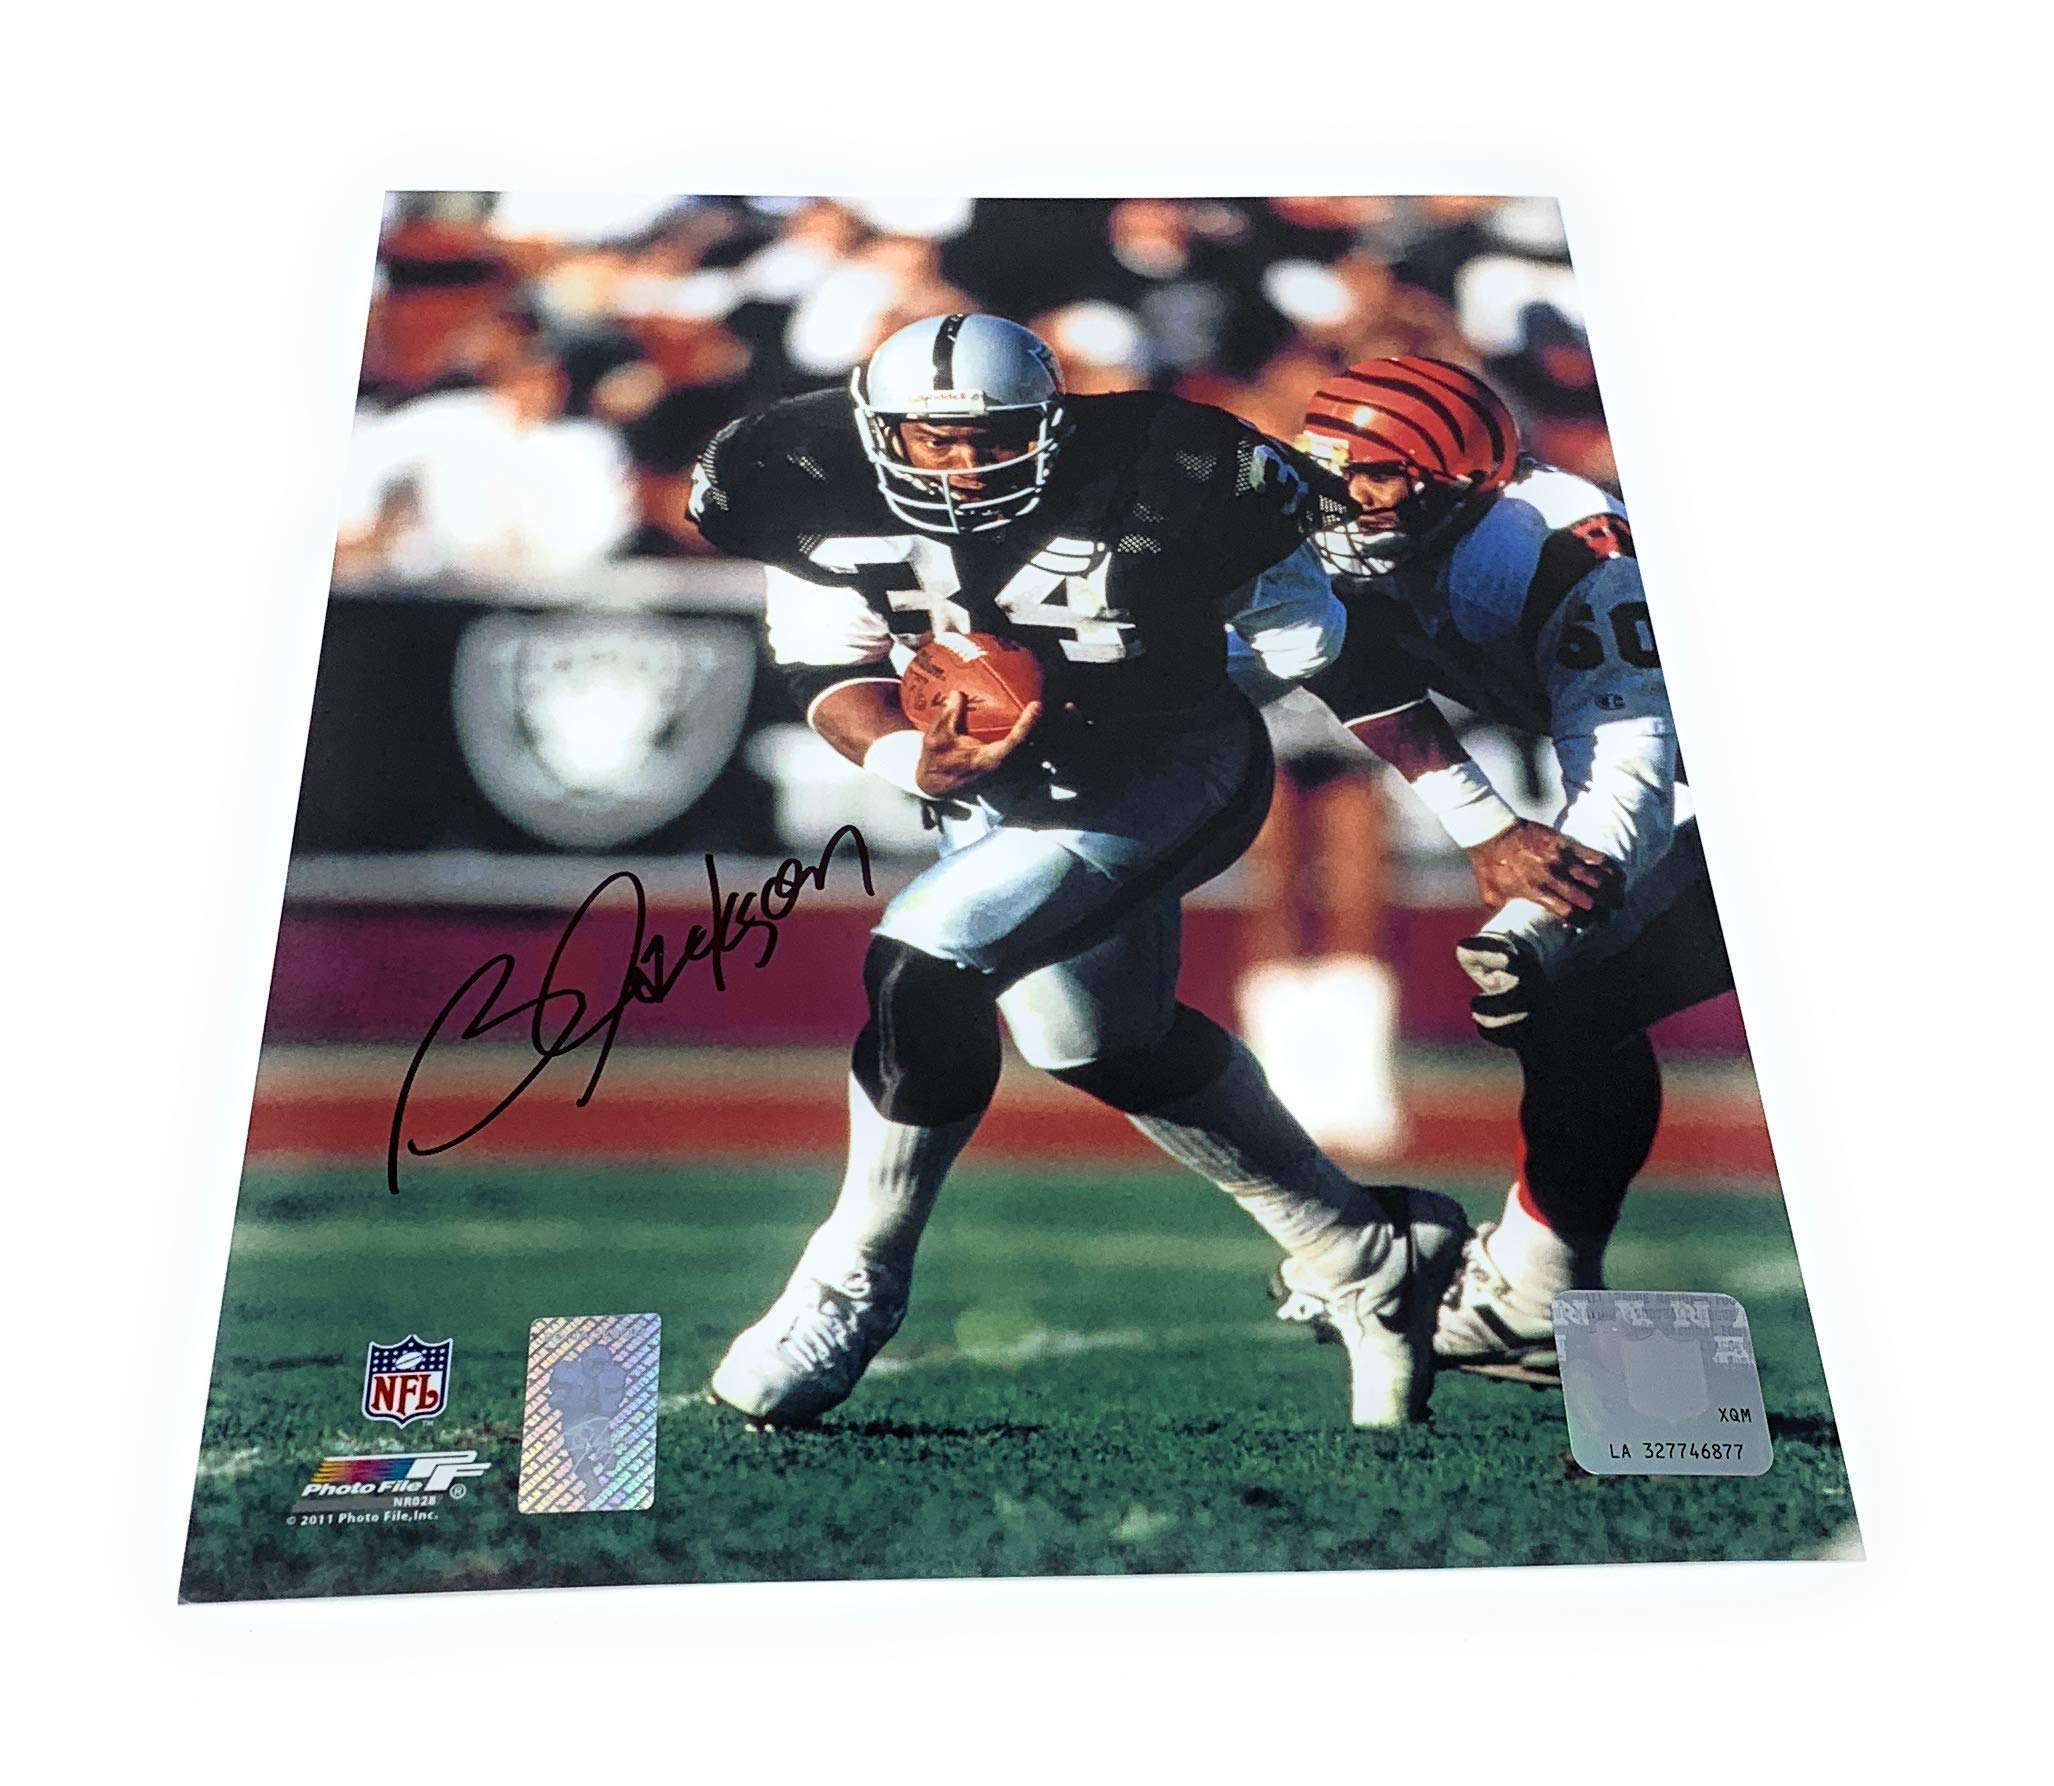 Bo Jackson Oakland Raiders Signed Autograph 8x10 Photo Photograph GTSM Jackson Player Hologram Certified